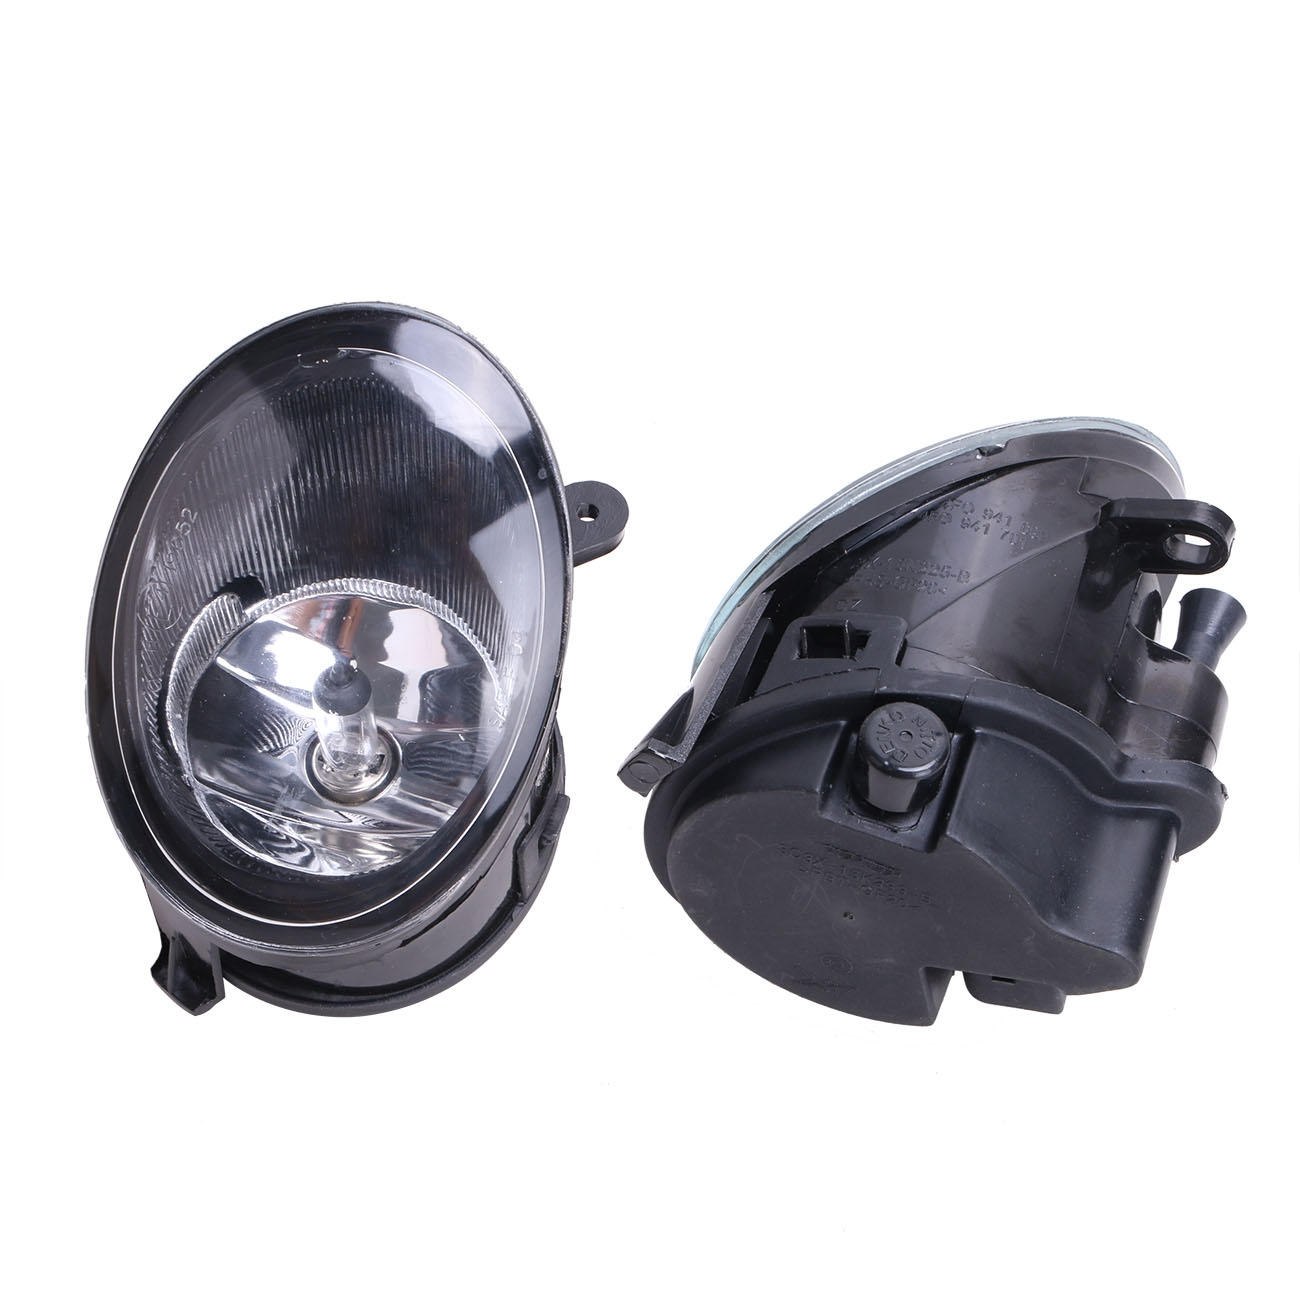 1 Pair Driving Front Bumper Fog Light Lamp For AUDI A6 C6 2005 2006 2007 2008 // free shipping for vw polo 2005 2006 2007 2008 new front left side halogen fog light fog light with bulb